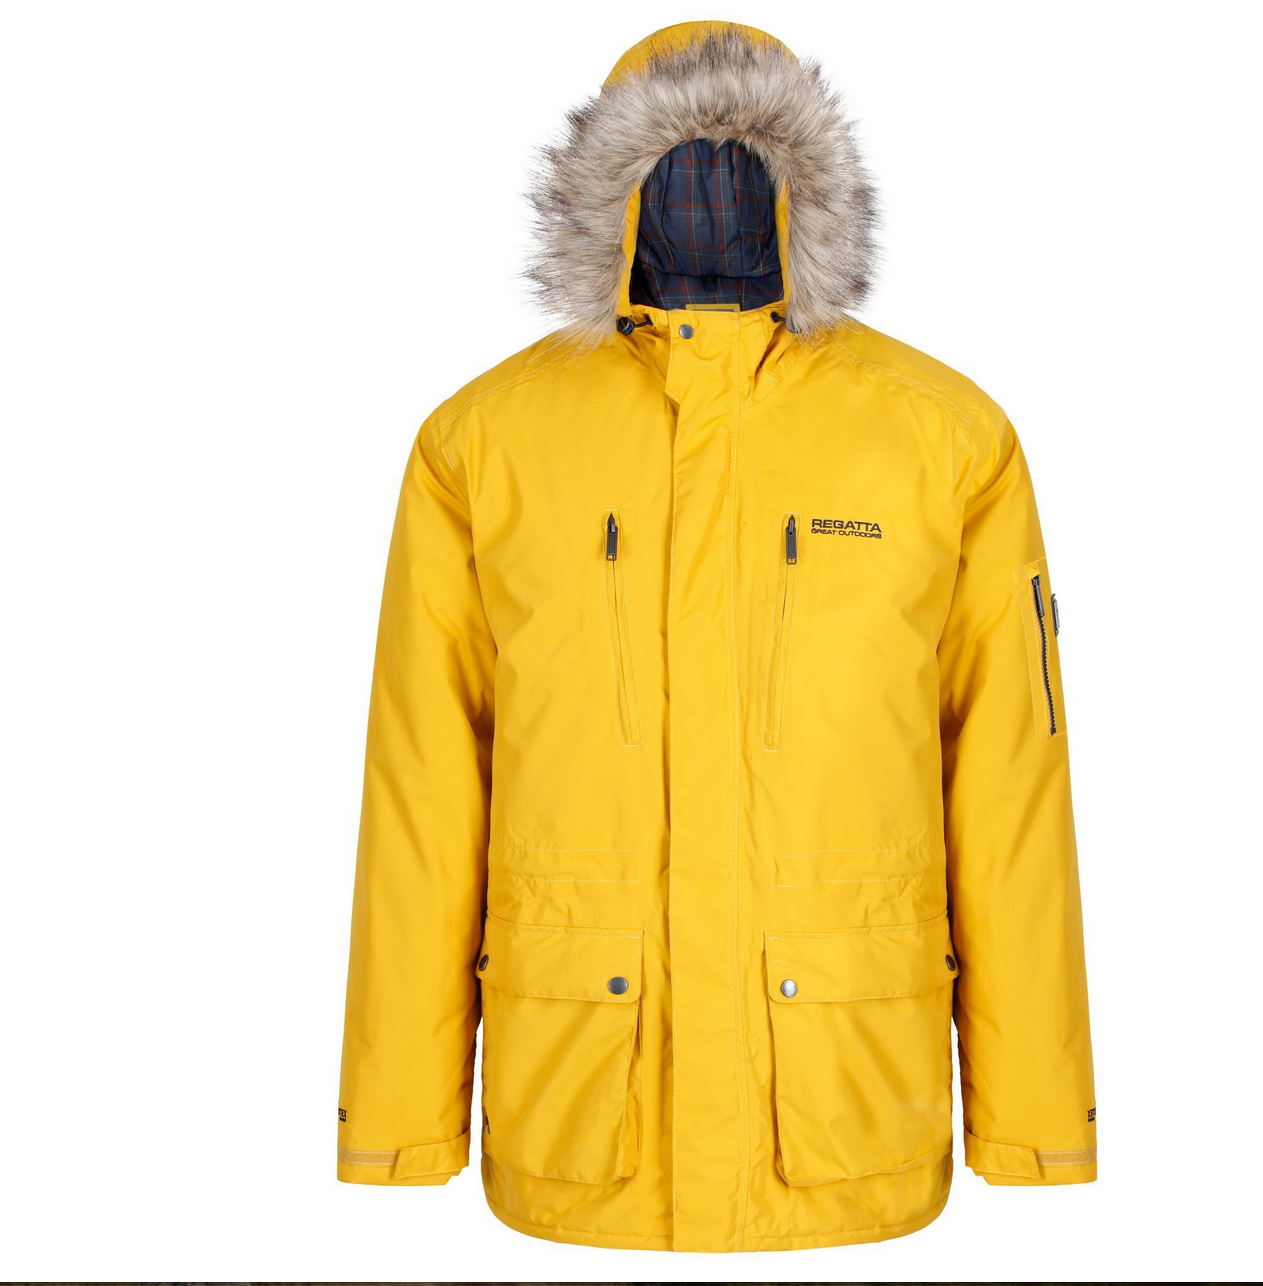 Regatta Salinger Waterproof Insulated Jacket Mustard Seed - Pre-Christmas Shopping